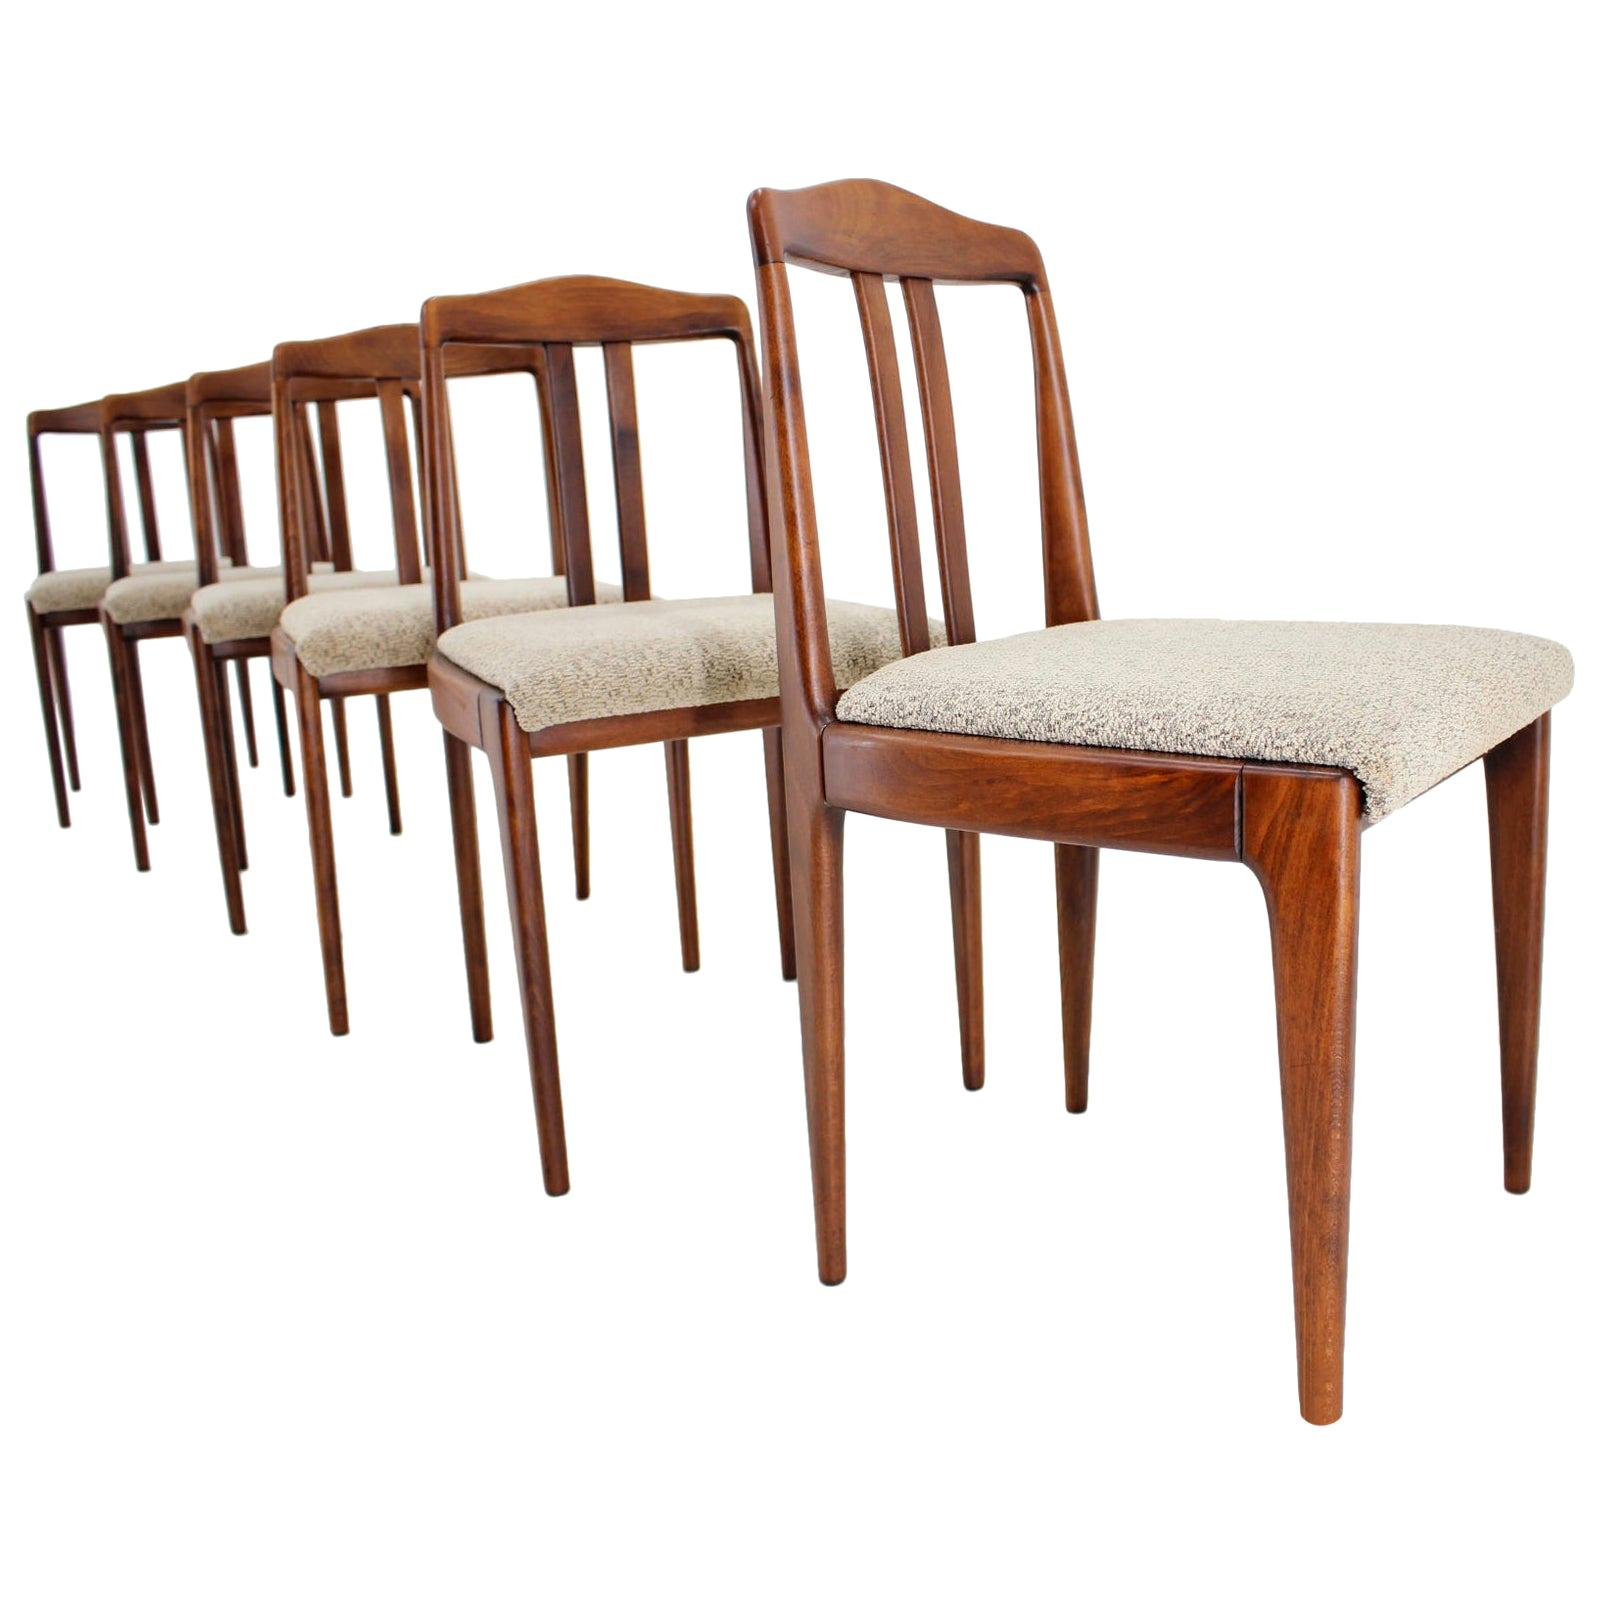 Set of Six Dining Chairs, 1960s